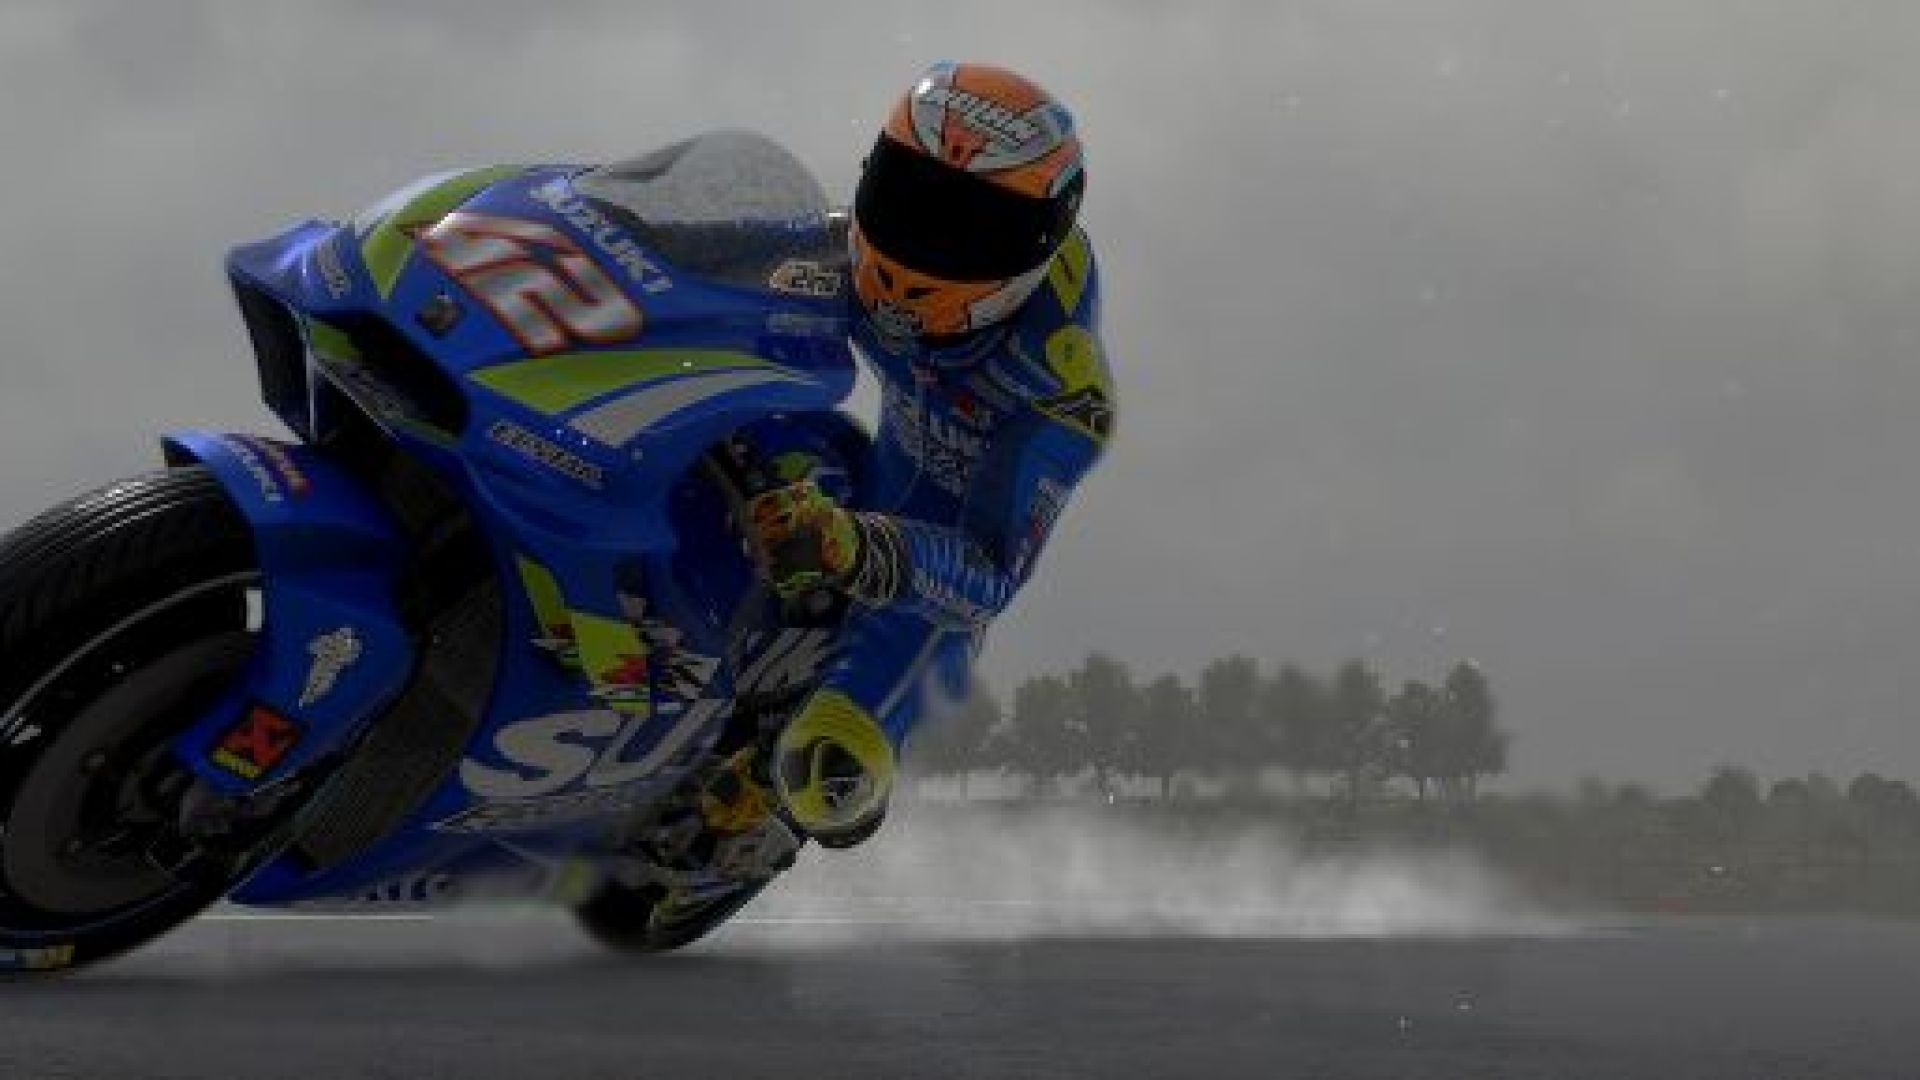 Milestone Officially Unveils A.N.N.A., Coming First to MotoGP 19